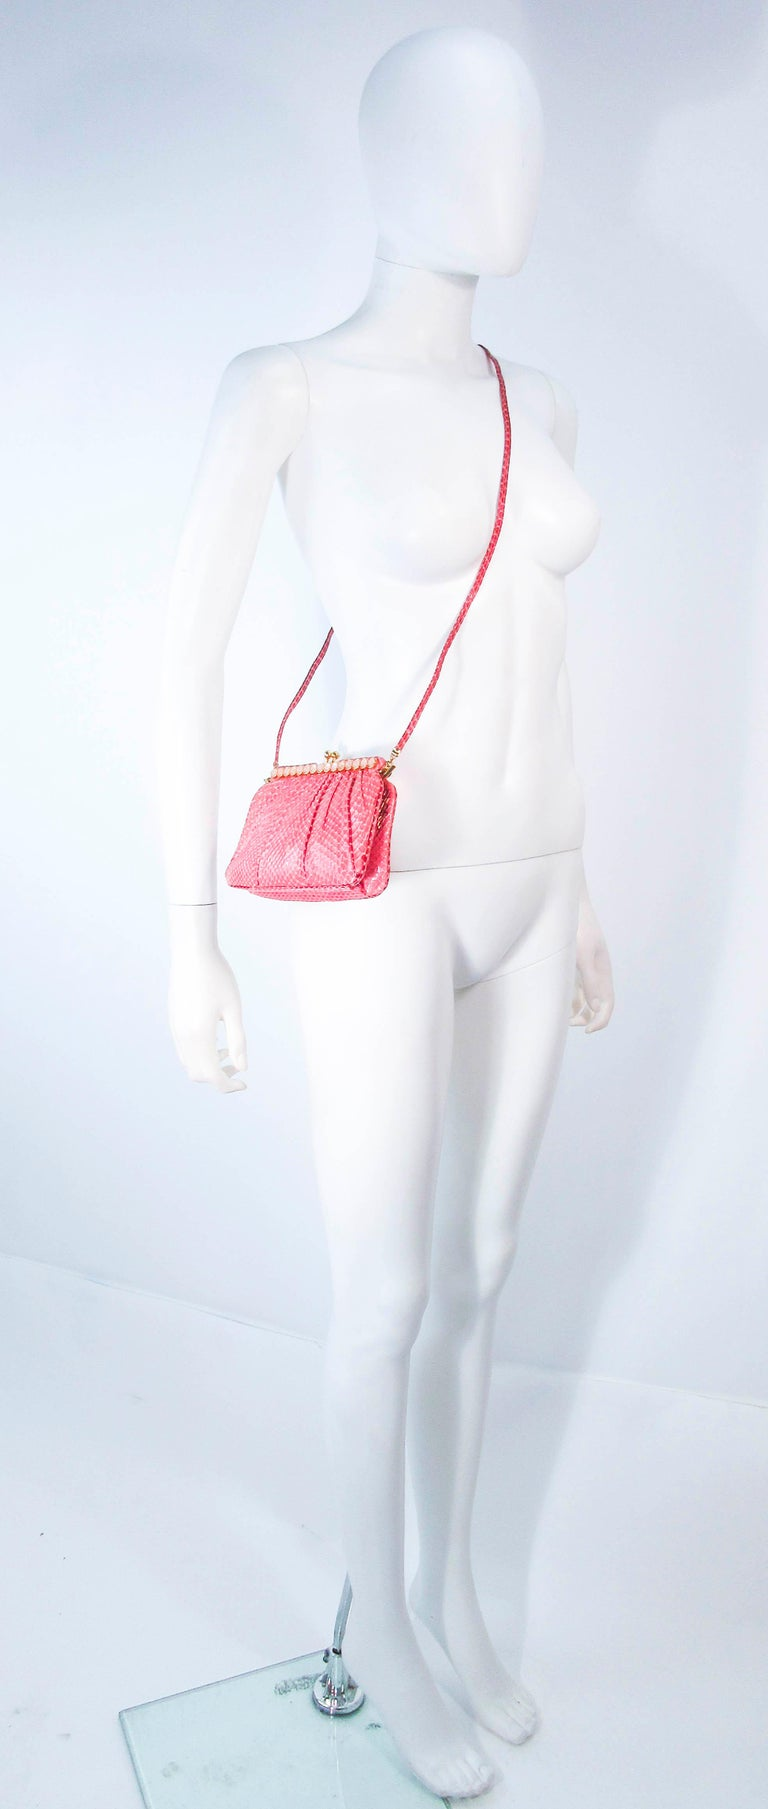 JUDITH LEIBER Pink Snakeskin Clutch w/ Optional Strap Mirror Coin Purse  For Sale 6